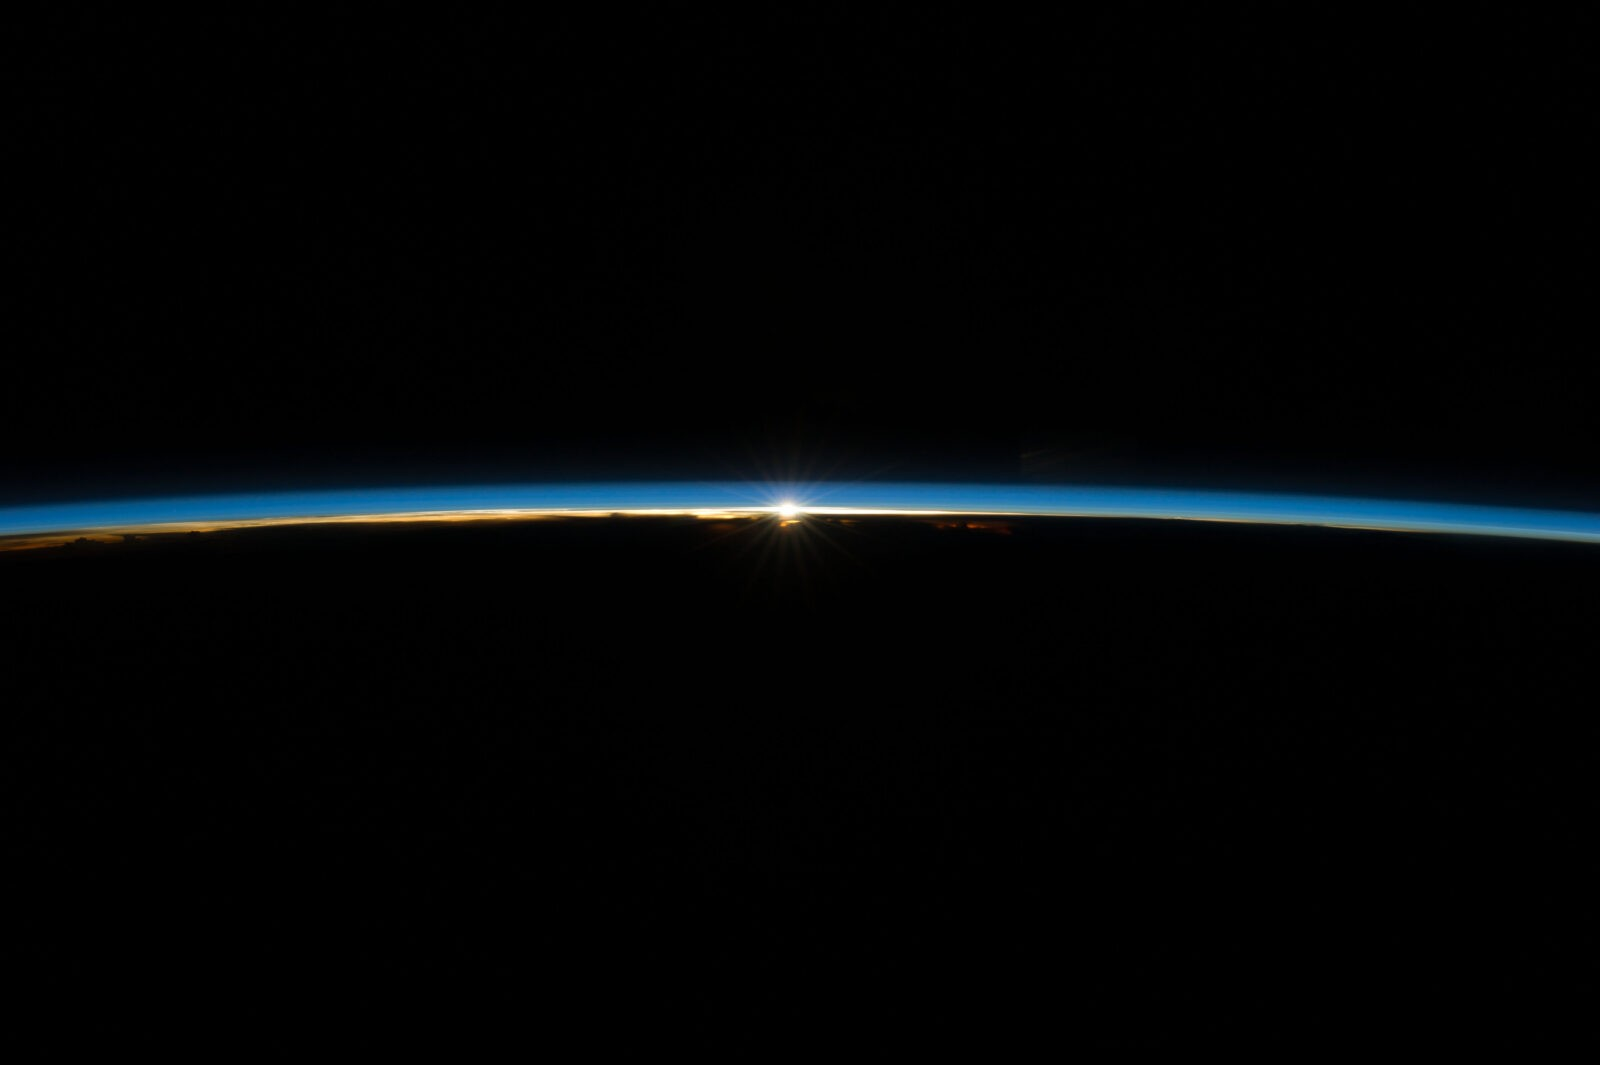 Earth's thin blue atmosphere_ISS_040e008179